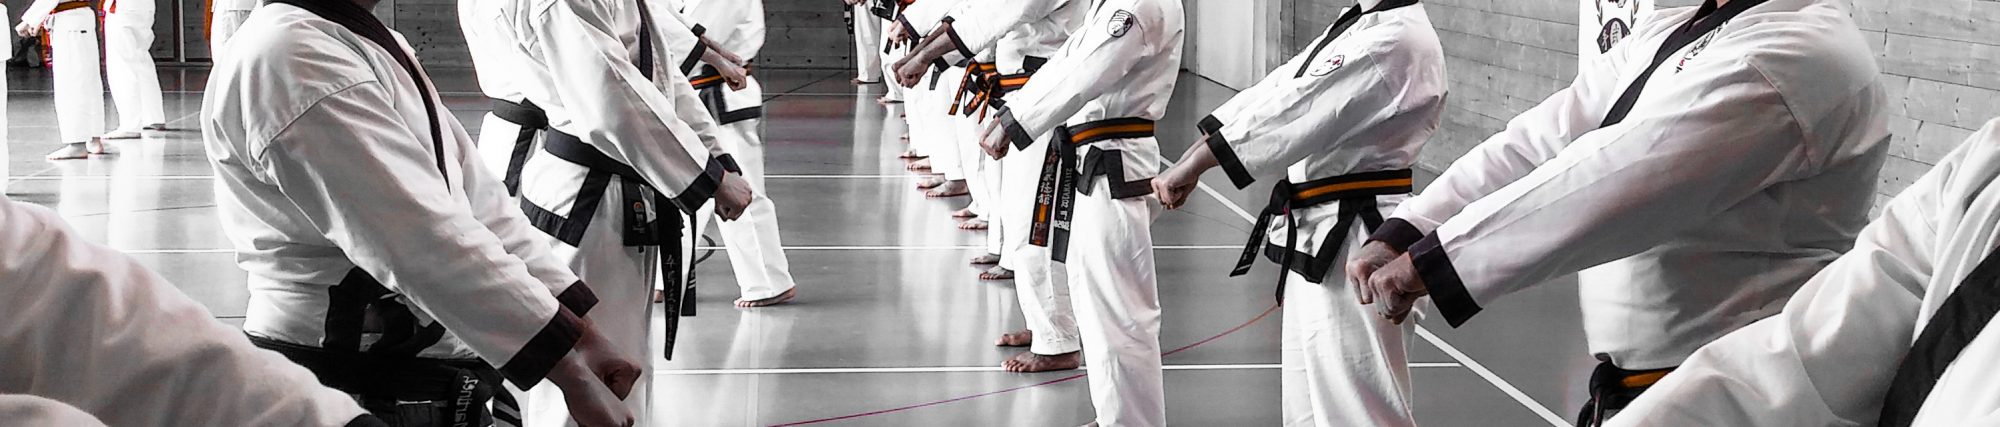 Blog wasatch martial arts fandeluxe Choice Image